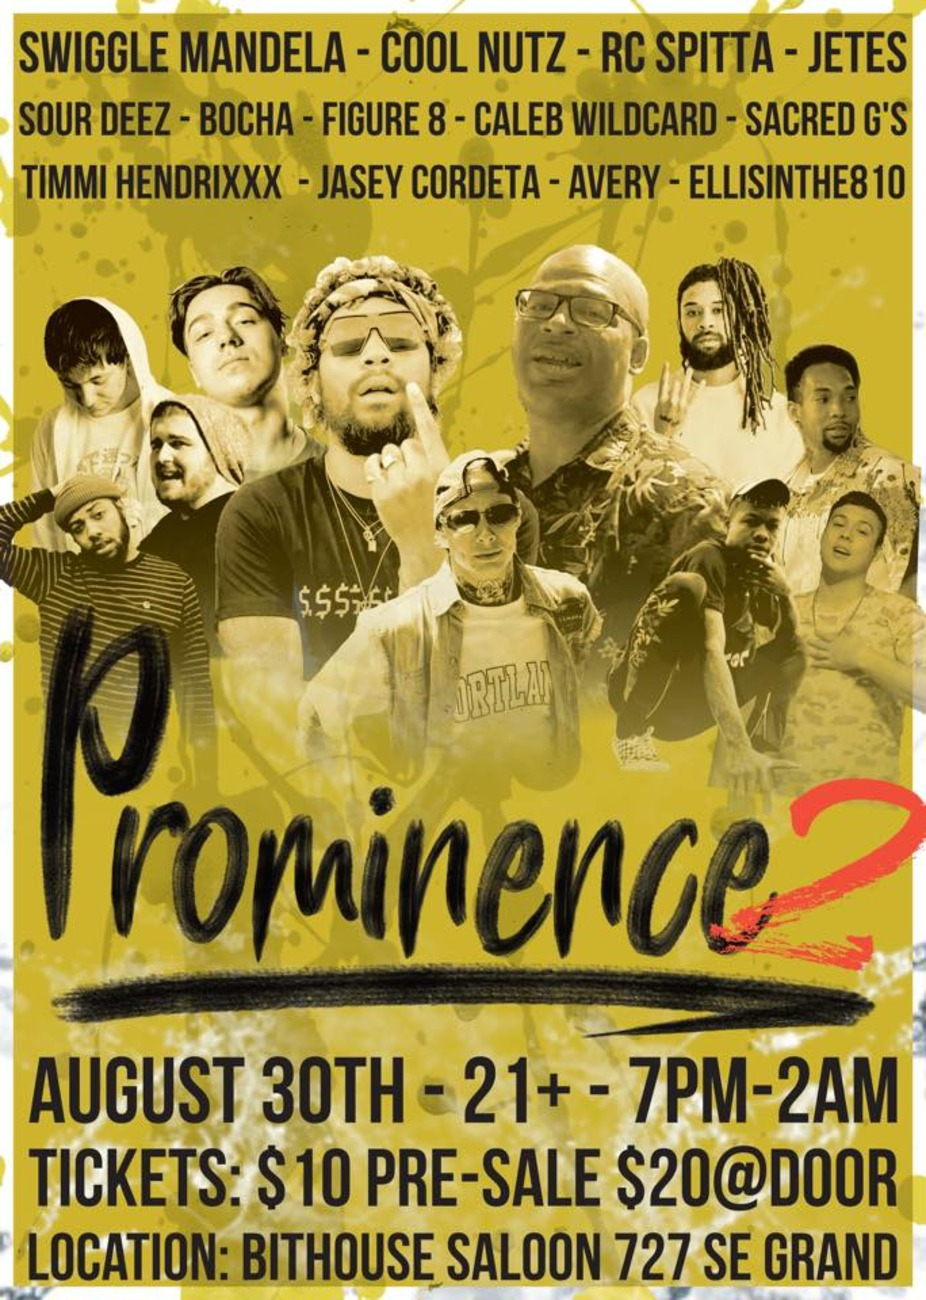 Prominence Ch. 2 w/ Swiggle Mandela & Cool Nutz event photo